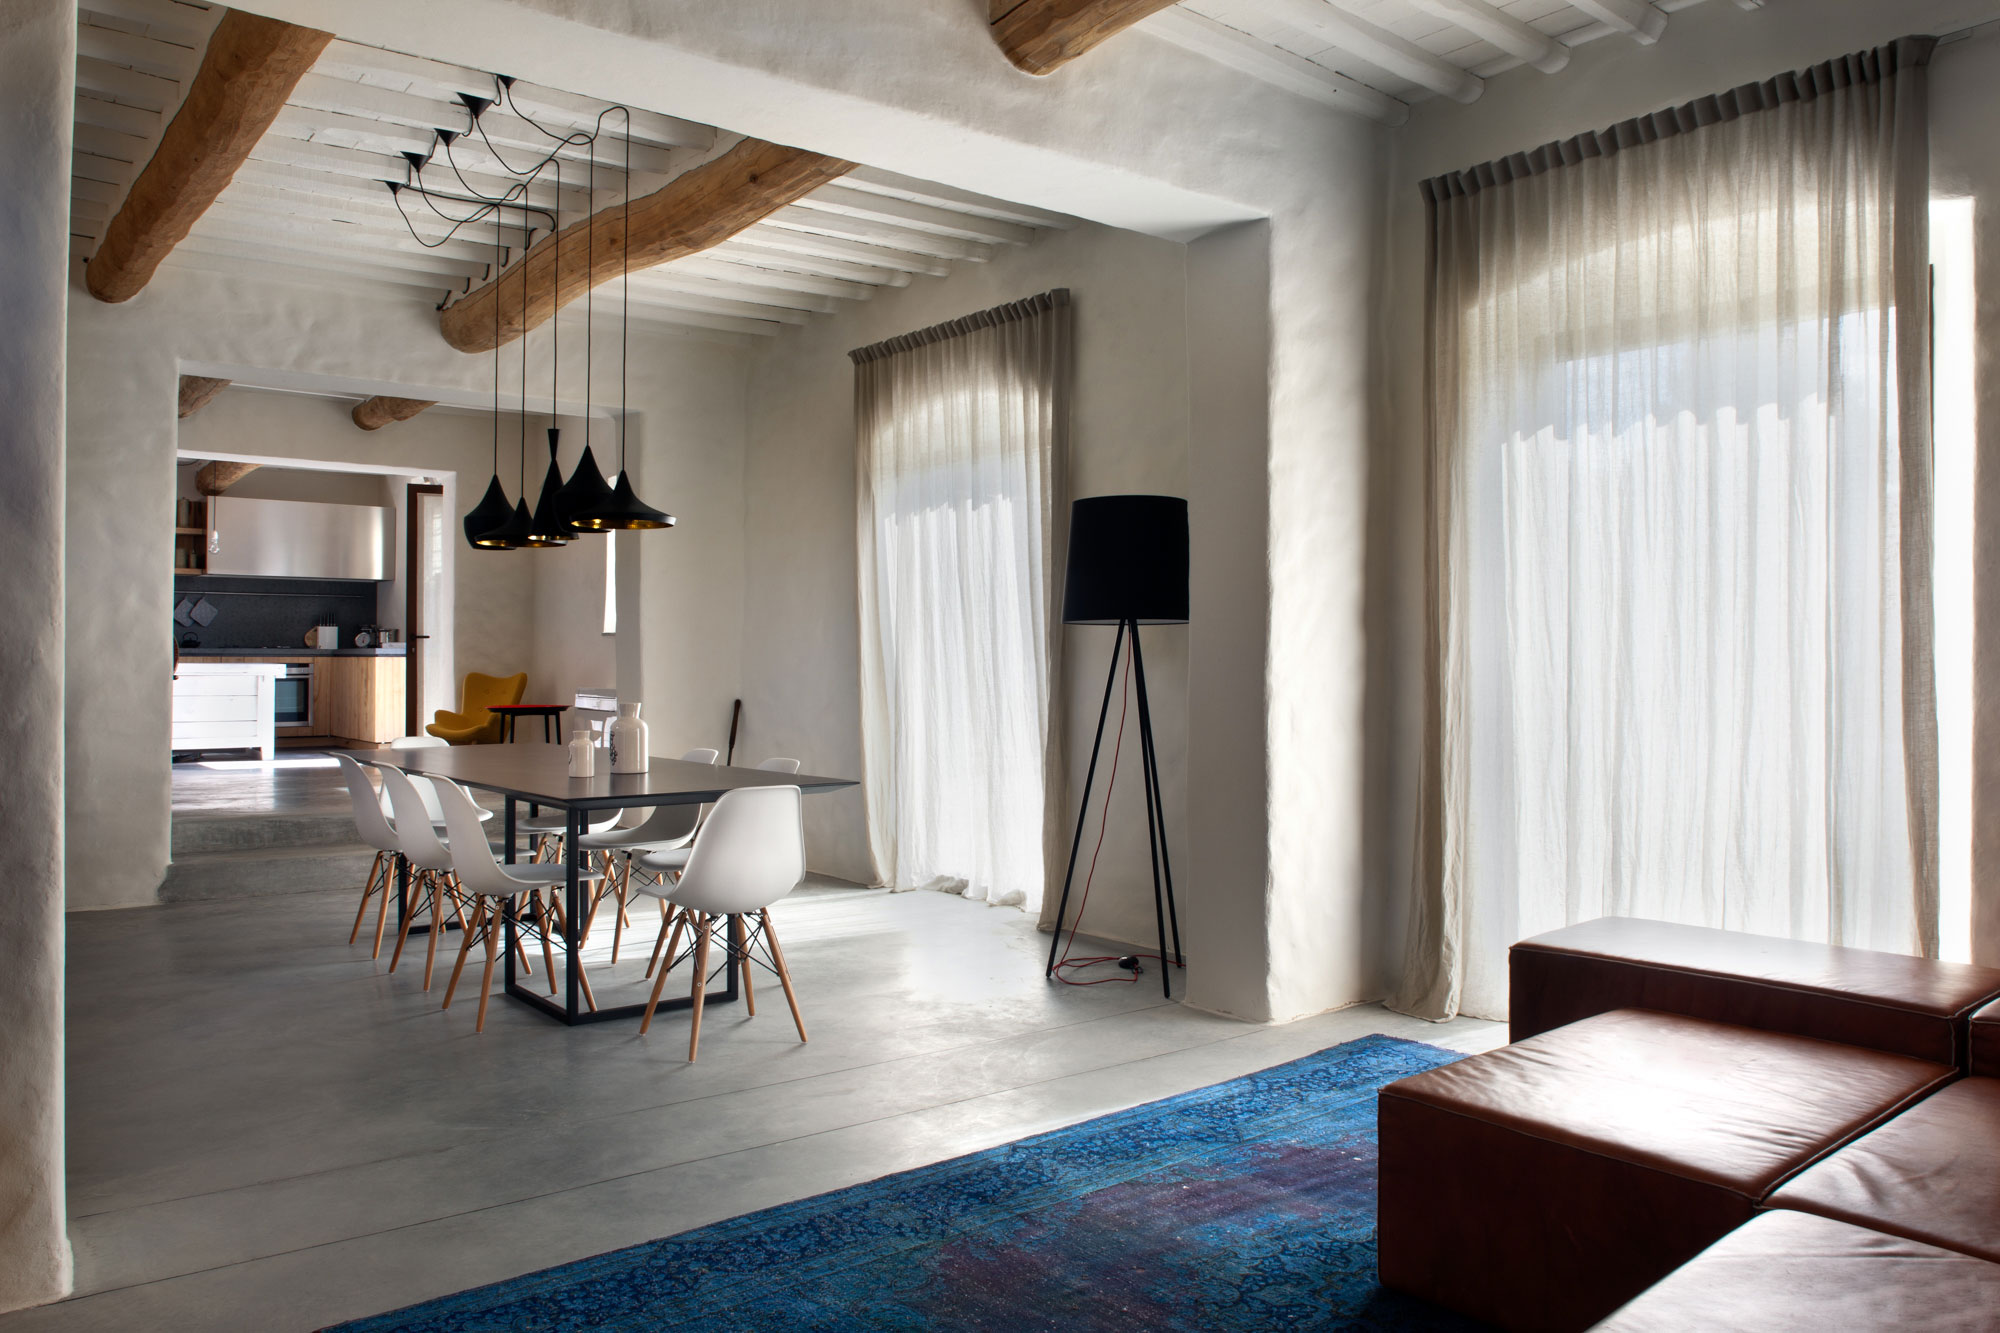 MIDE architetti Renovate a Nineteenth Century Home in Lucca